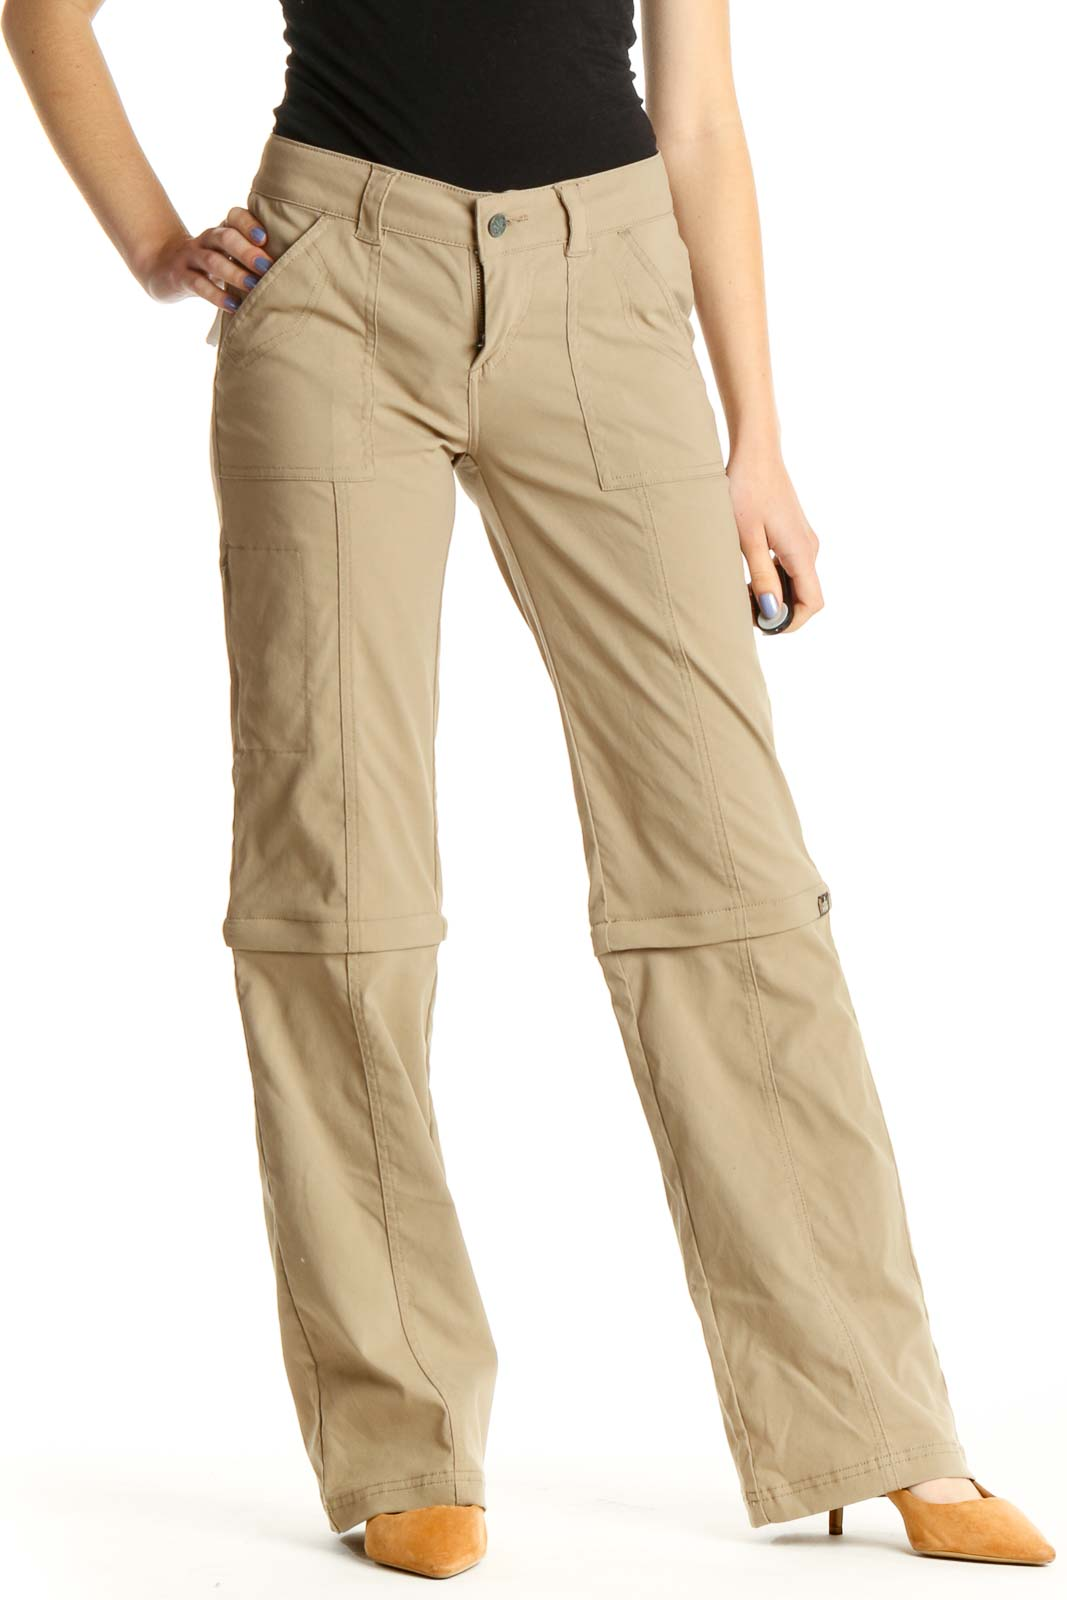 Brown Chic Cargos Pants Front